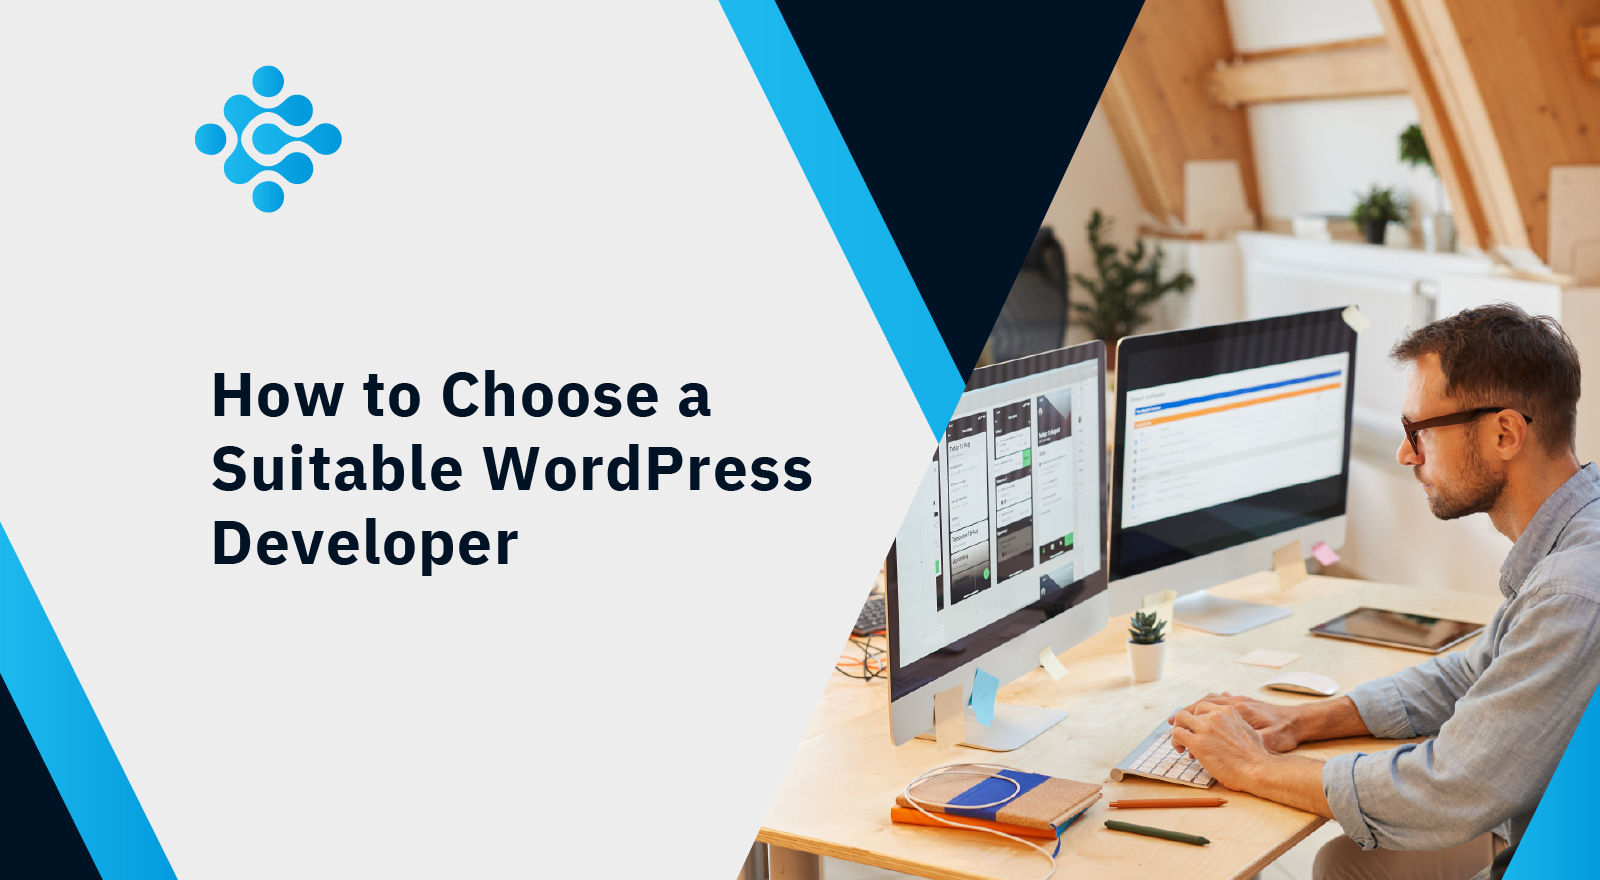 How to Choose a Suitable WordPress Developer